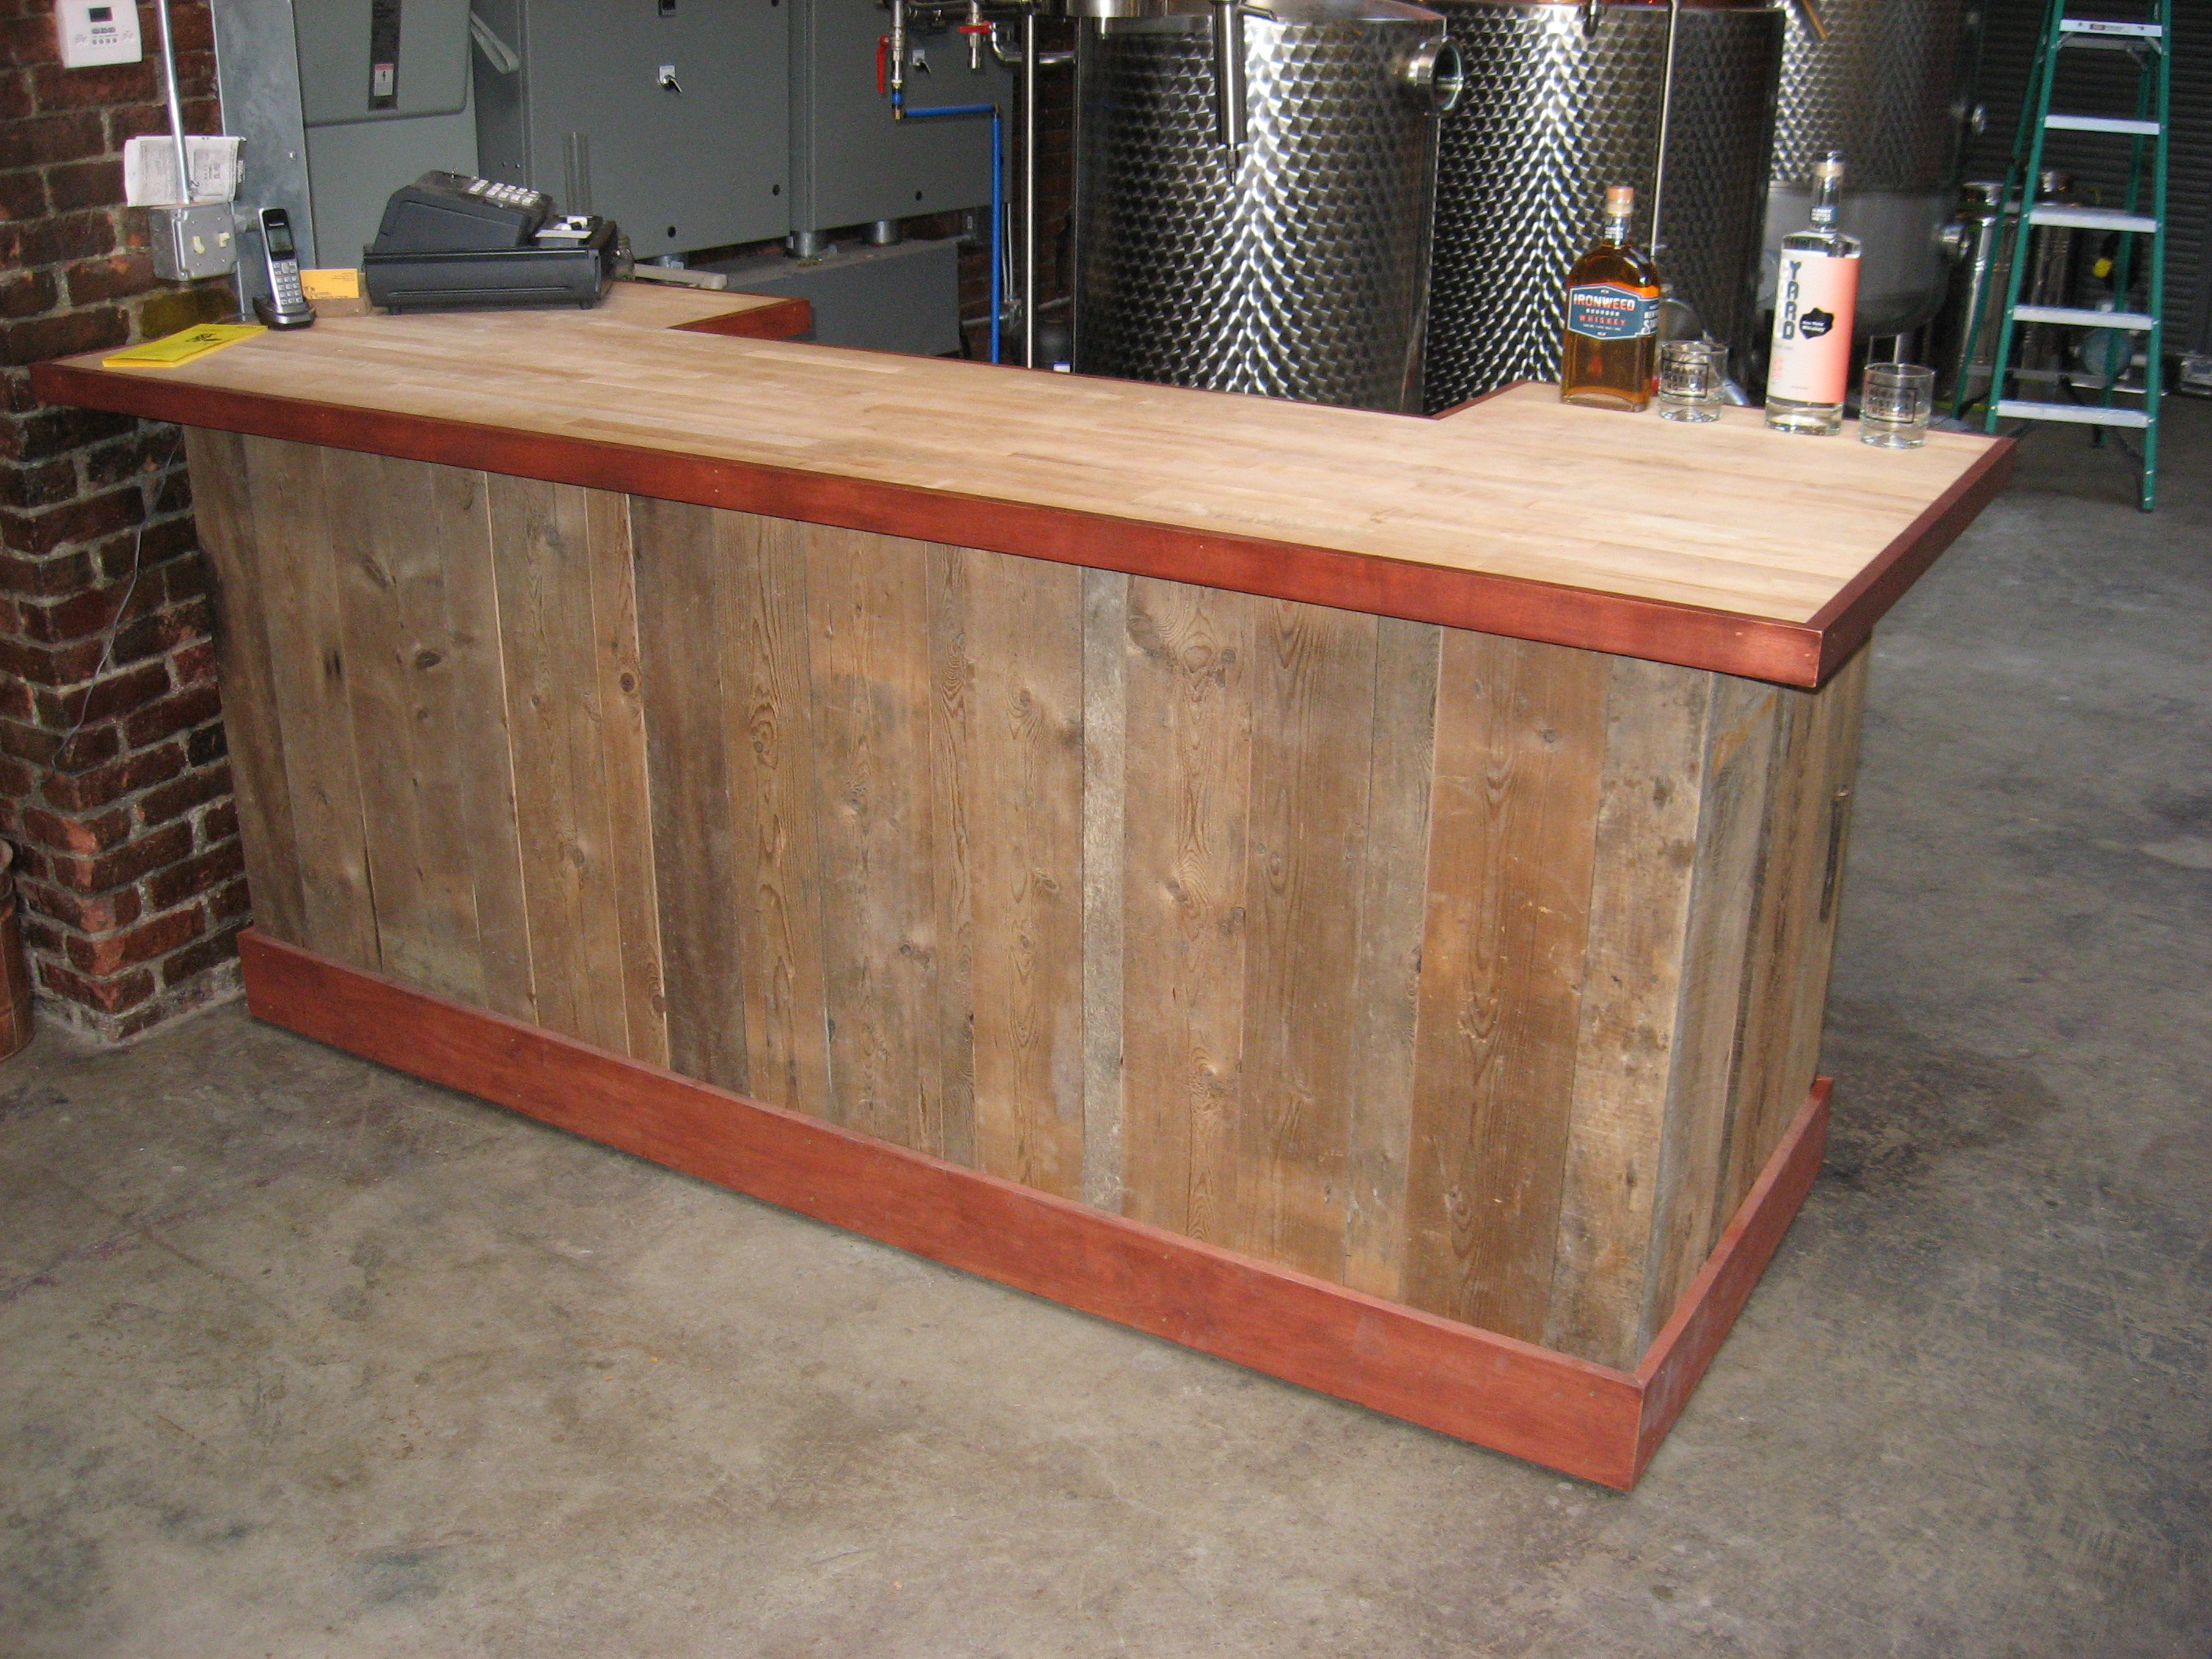 Albany Distilling Company tasting bar and sales counter constructed using maple butcher block, maple cladding, and reclaimed wood for kneewall